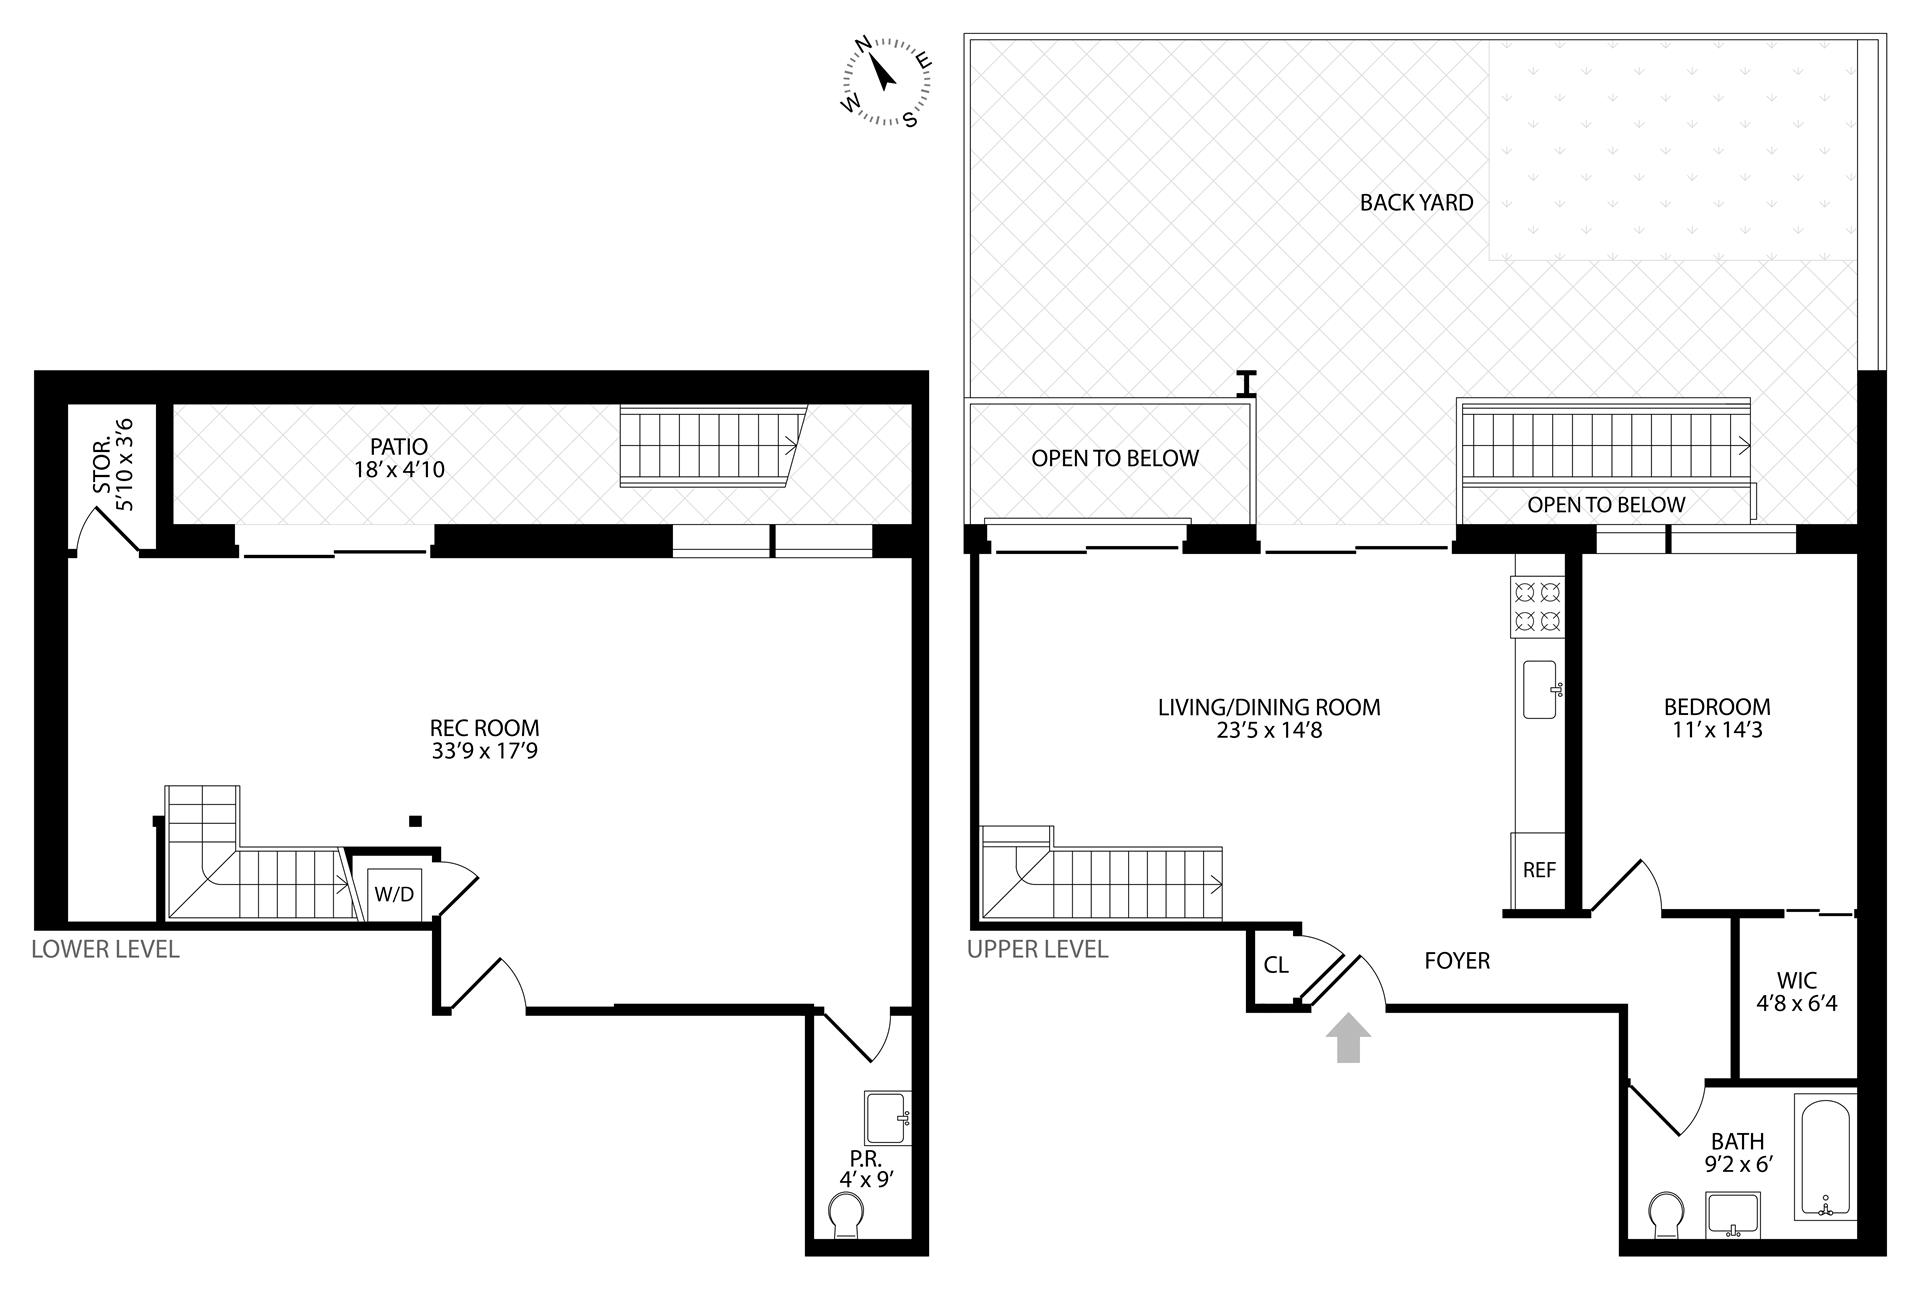 Floor plan of 267 Evergreen Avenue, 1 - Bushwick, New York